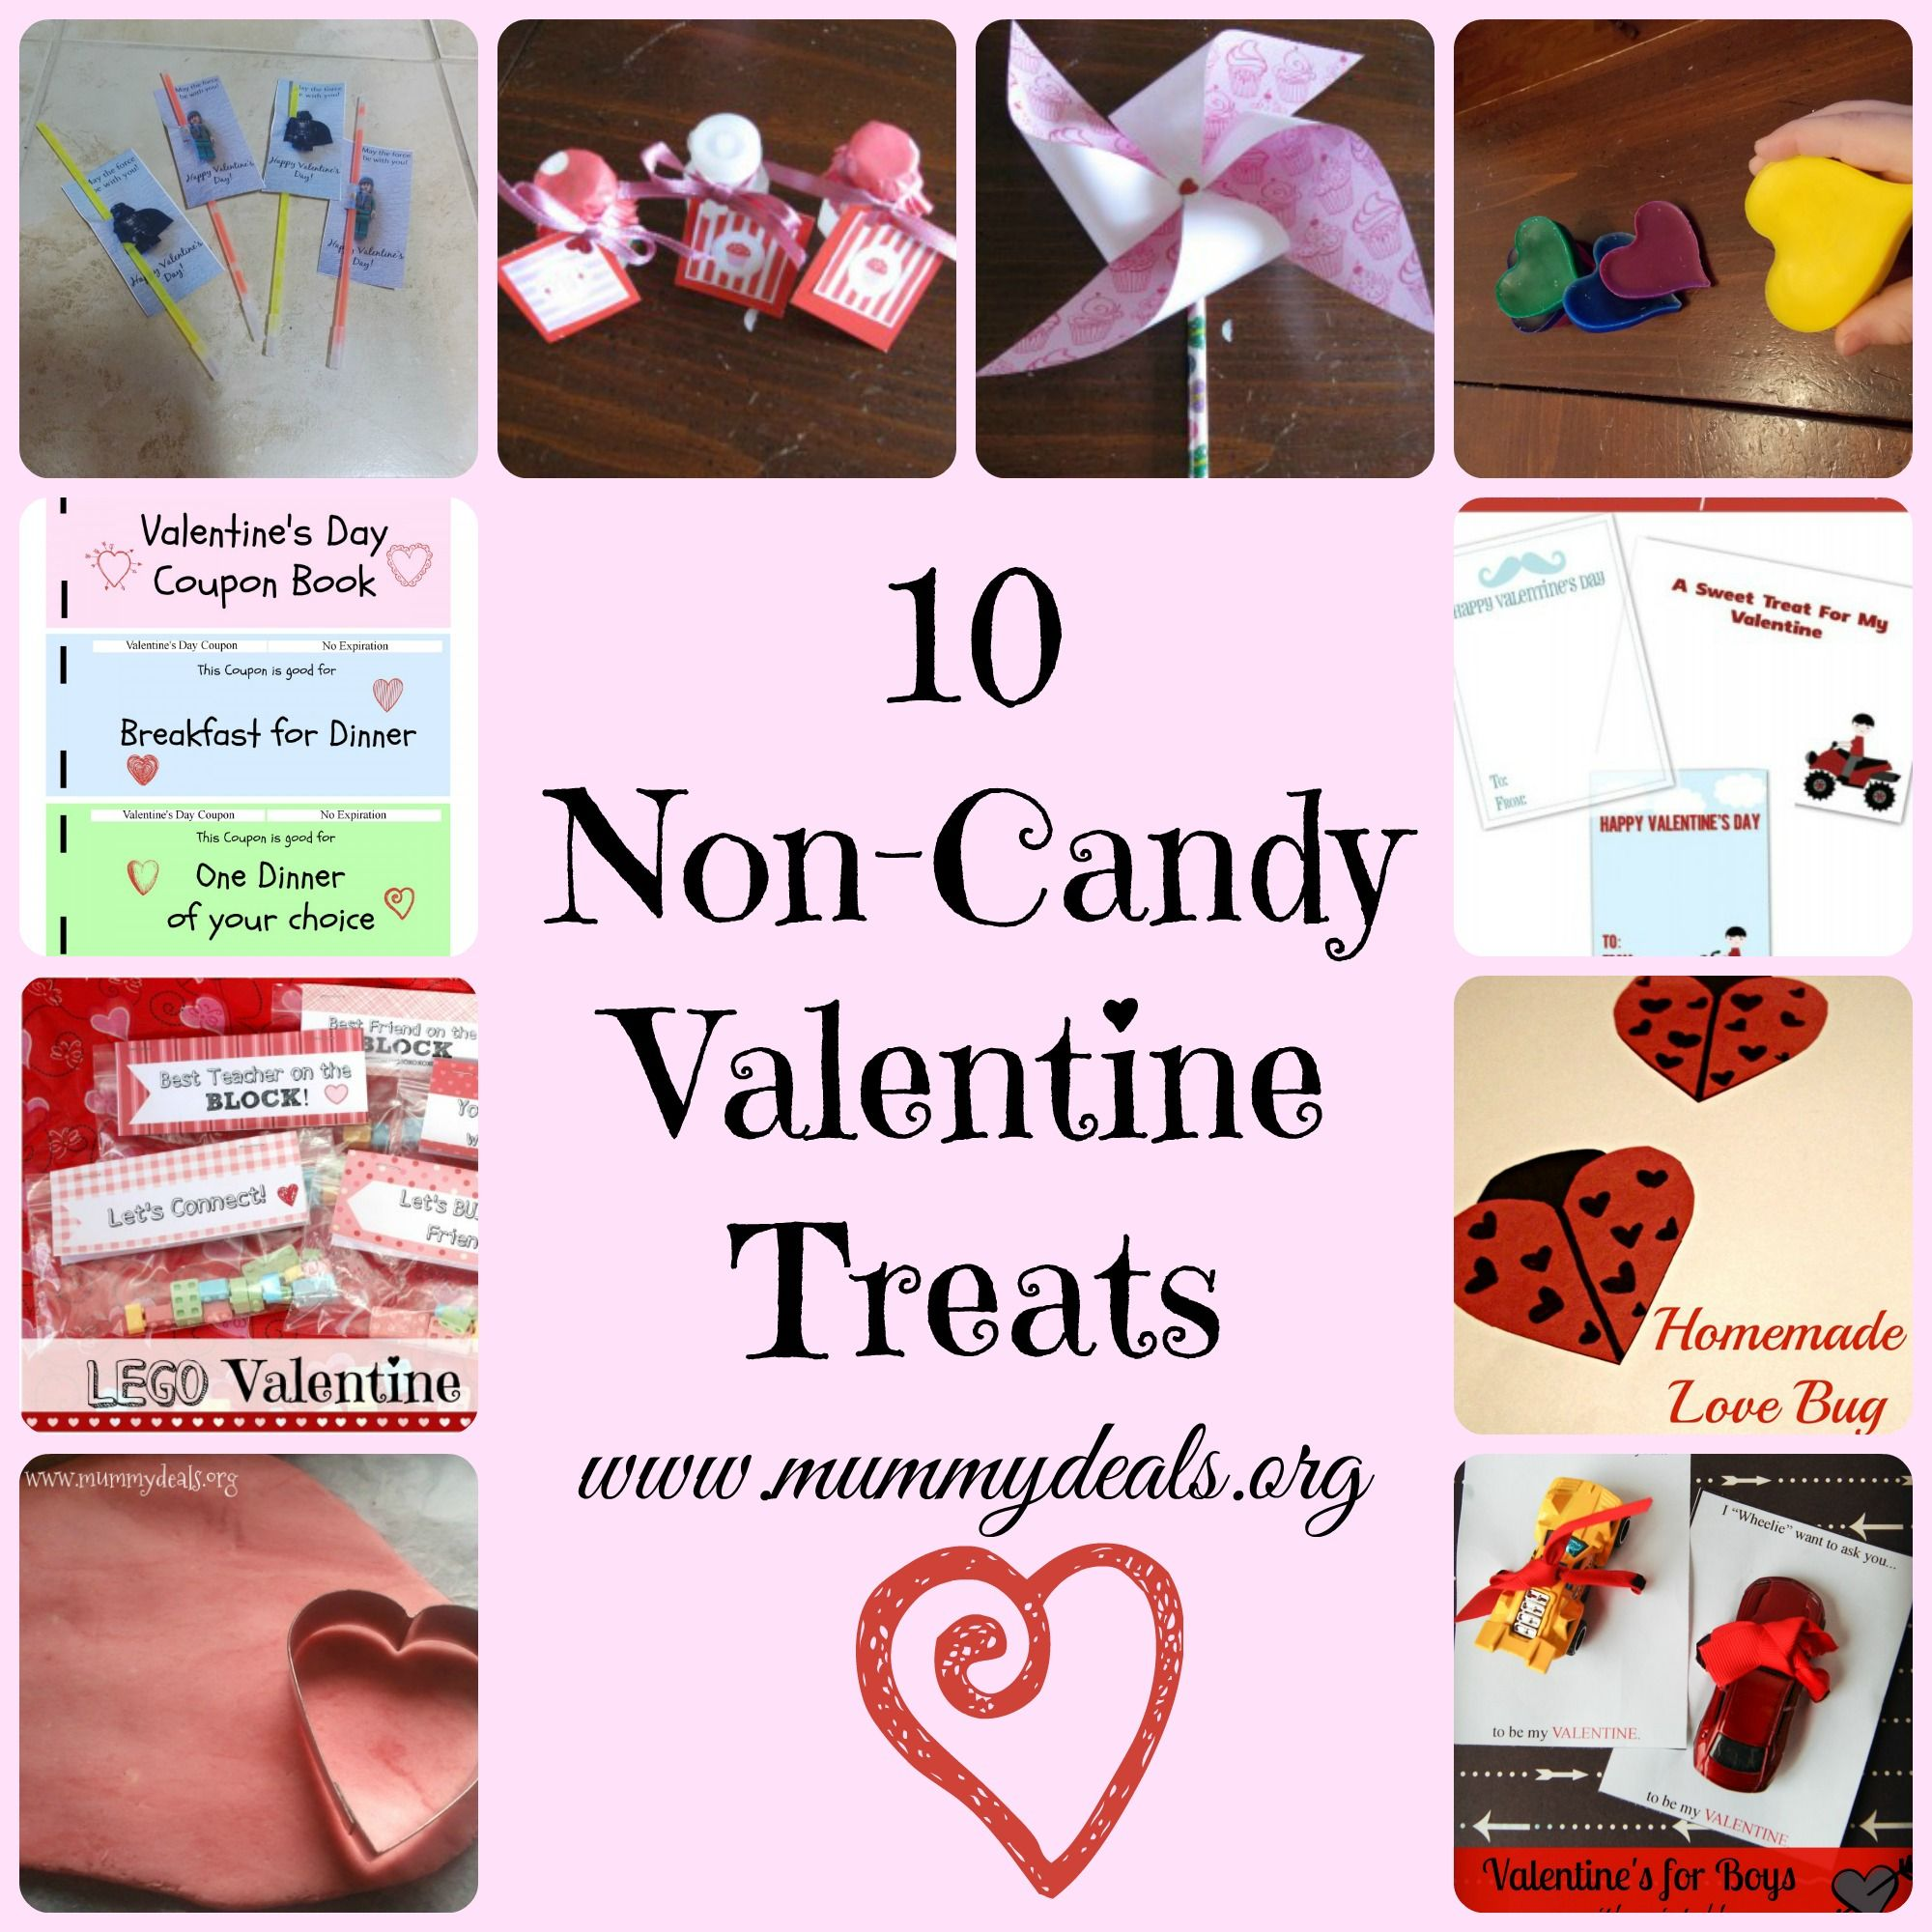 has your school banned candy or you dont want to give it no problem this list of 10 non candy valentine treats from mummy deals comes from a mom who